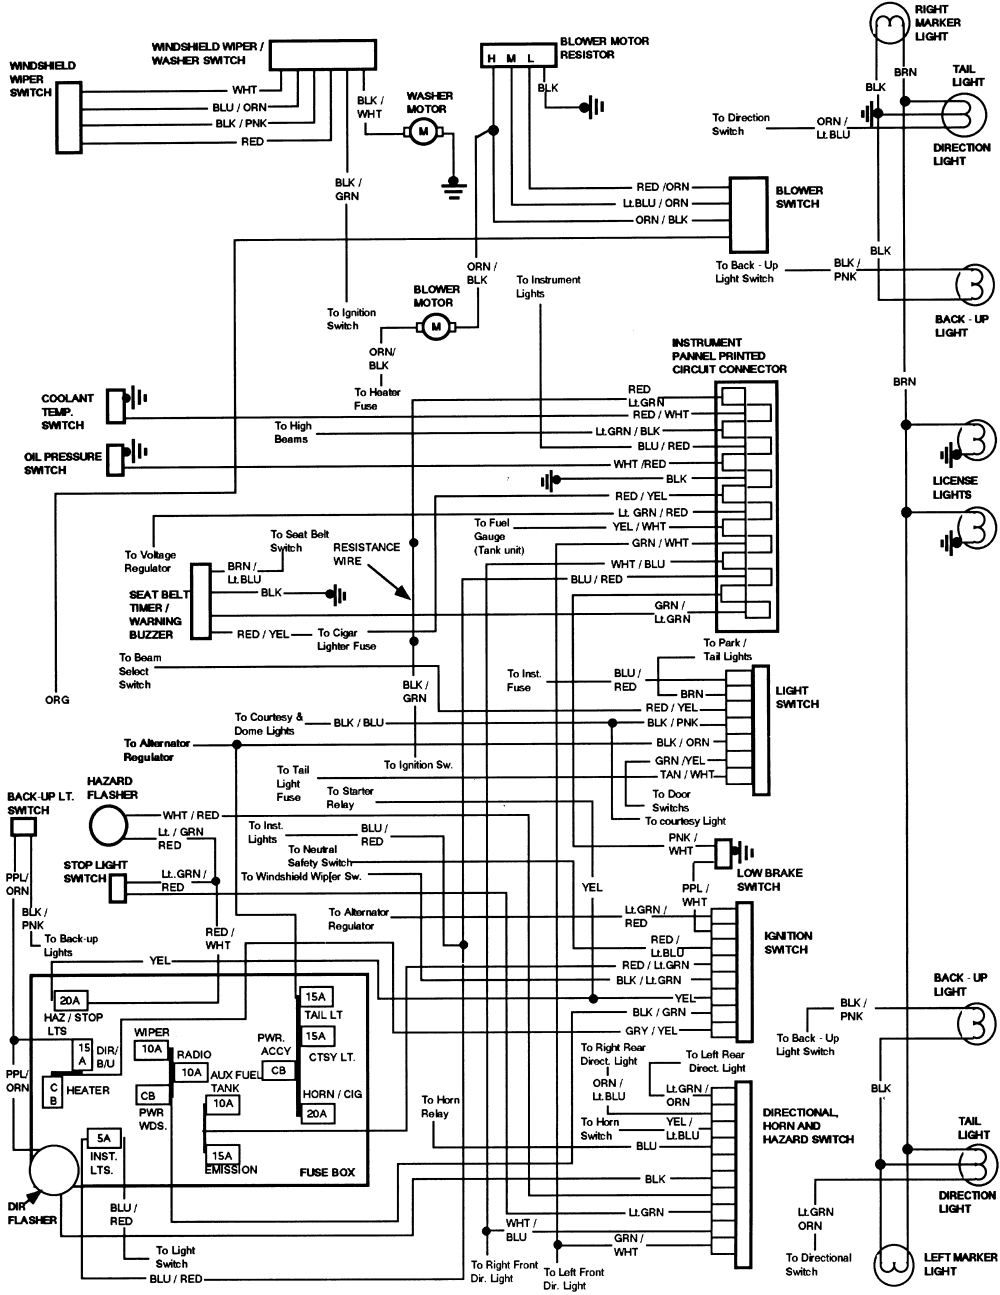 Ford Bronco Wiring Diagram from 4.bp.blogspot.com